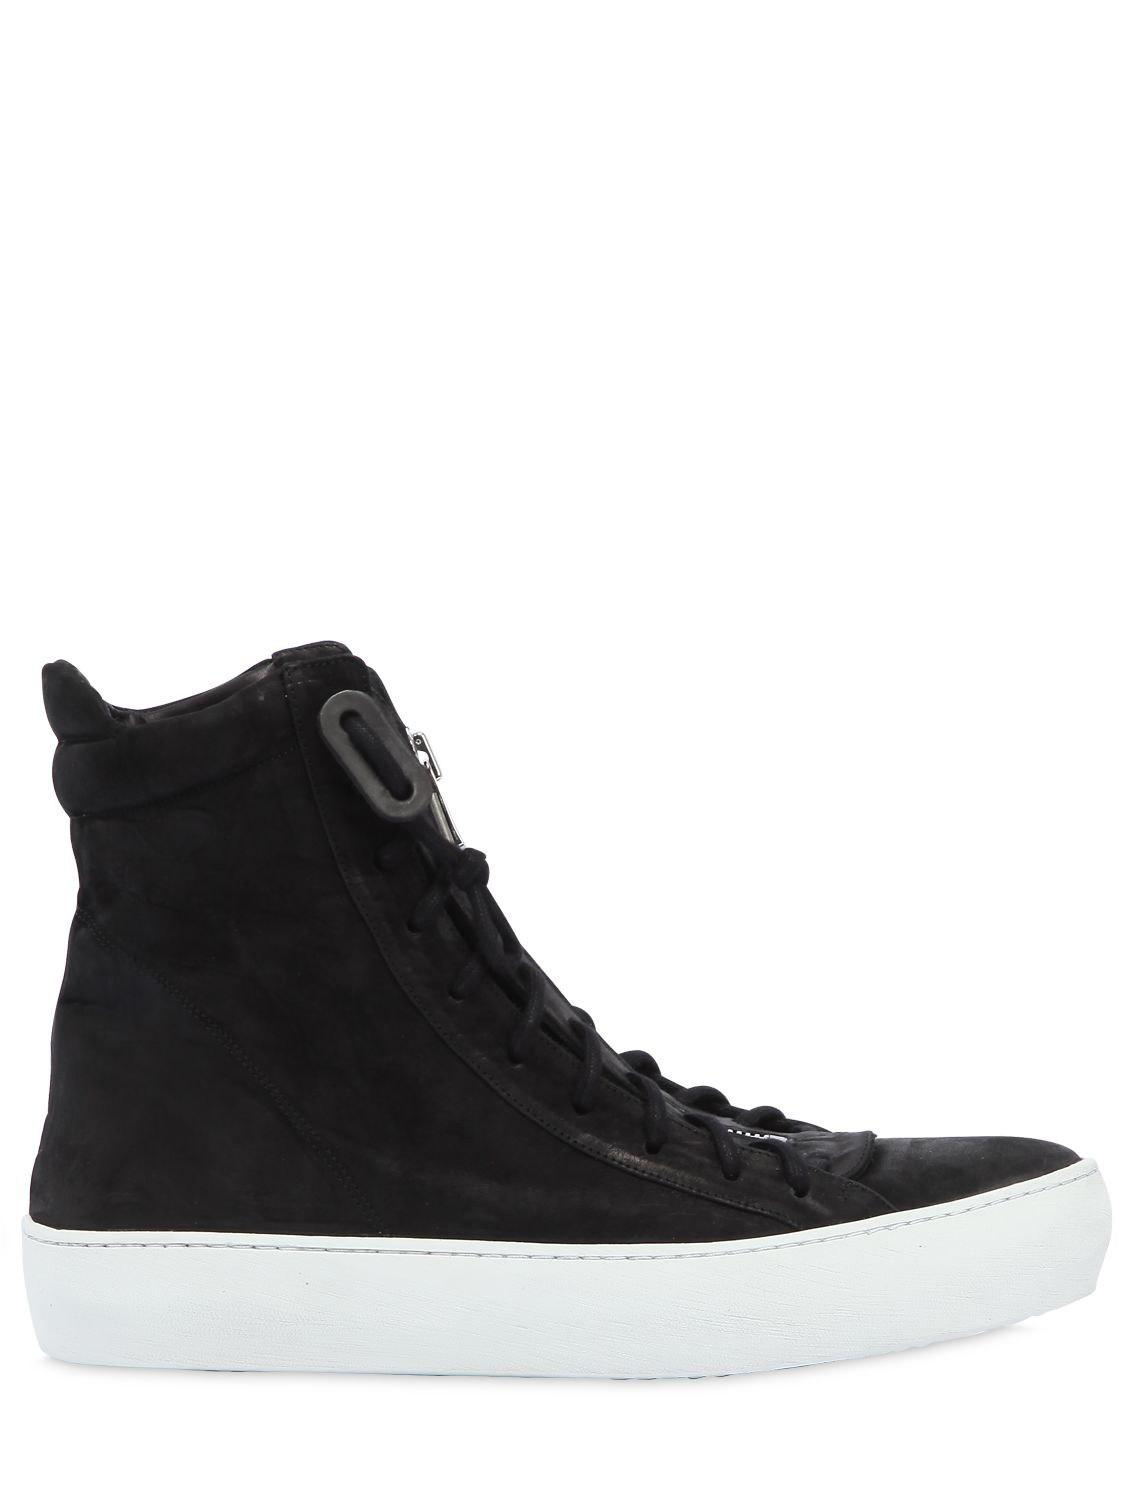 The Last ConspiracyWAXED SUEDE HIGH TOP ZIP UP SNEAKERS KAh9fhw